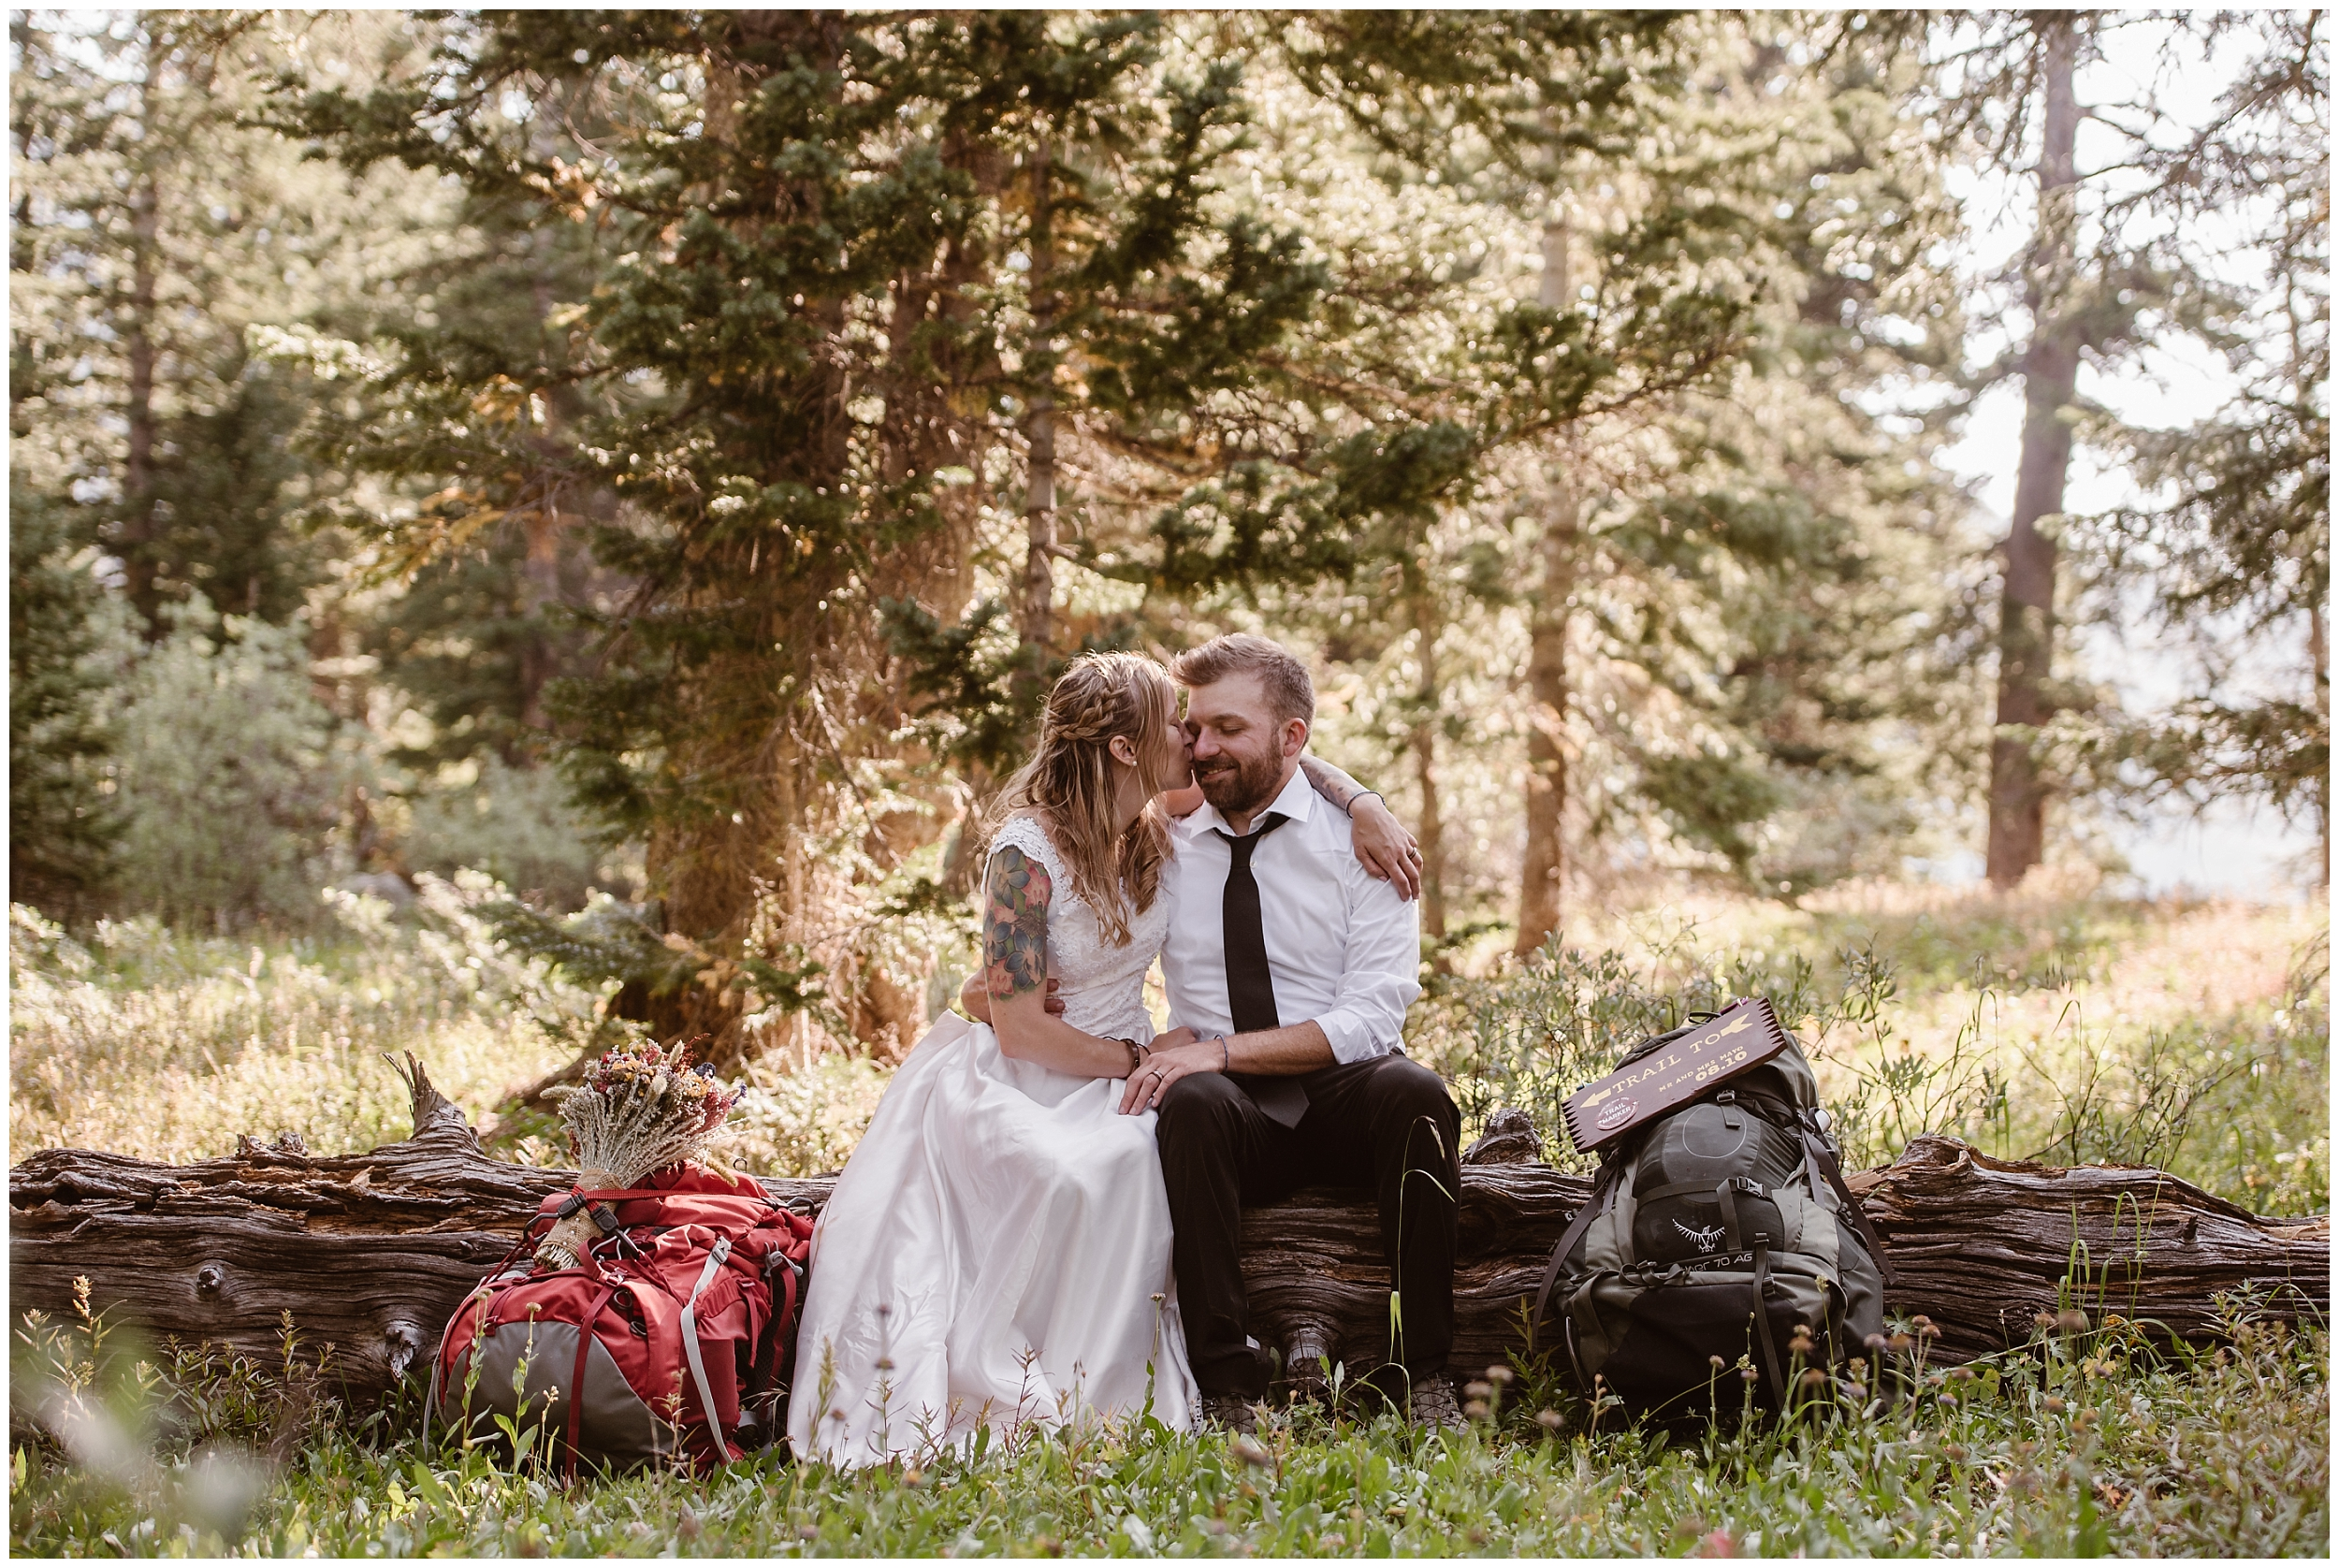 The newly married couple sits on a log in the Colorado forest, taking a break as they hike down for their elopement ceremony locaion spot. Surroudned by green forests, they embrace and kiss.